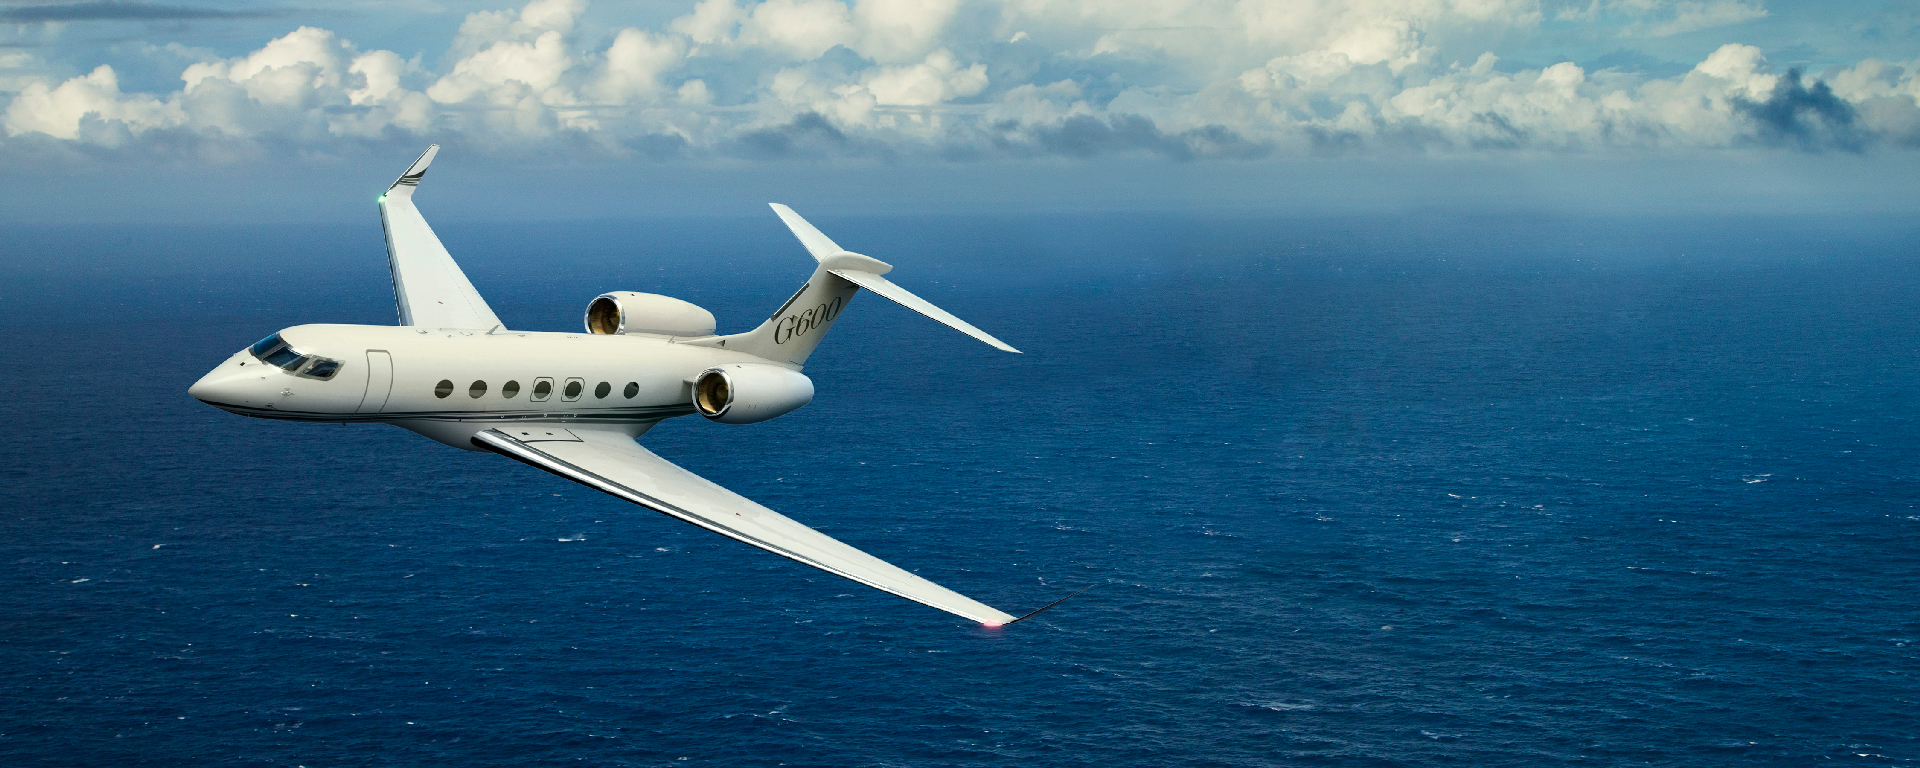 Market Opportunity for Private Jet Leases in the Middle East